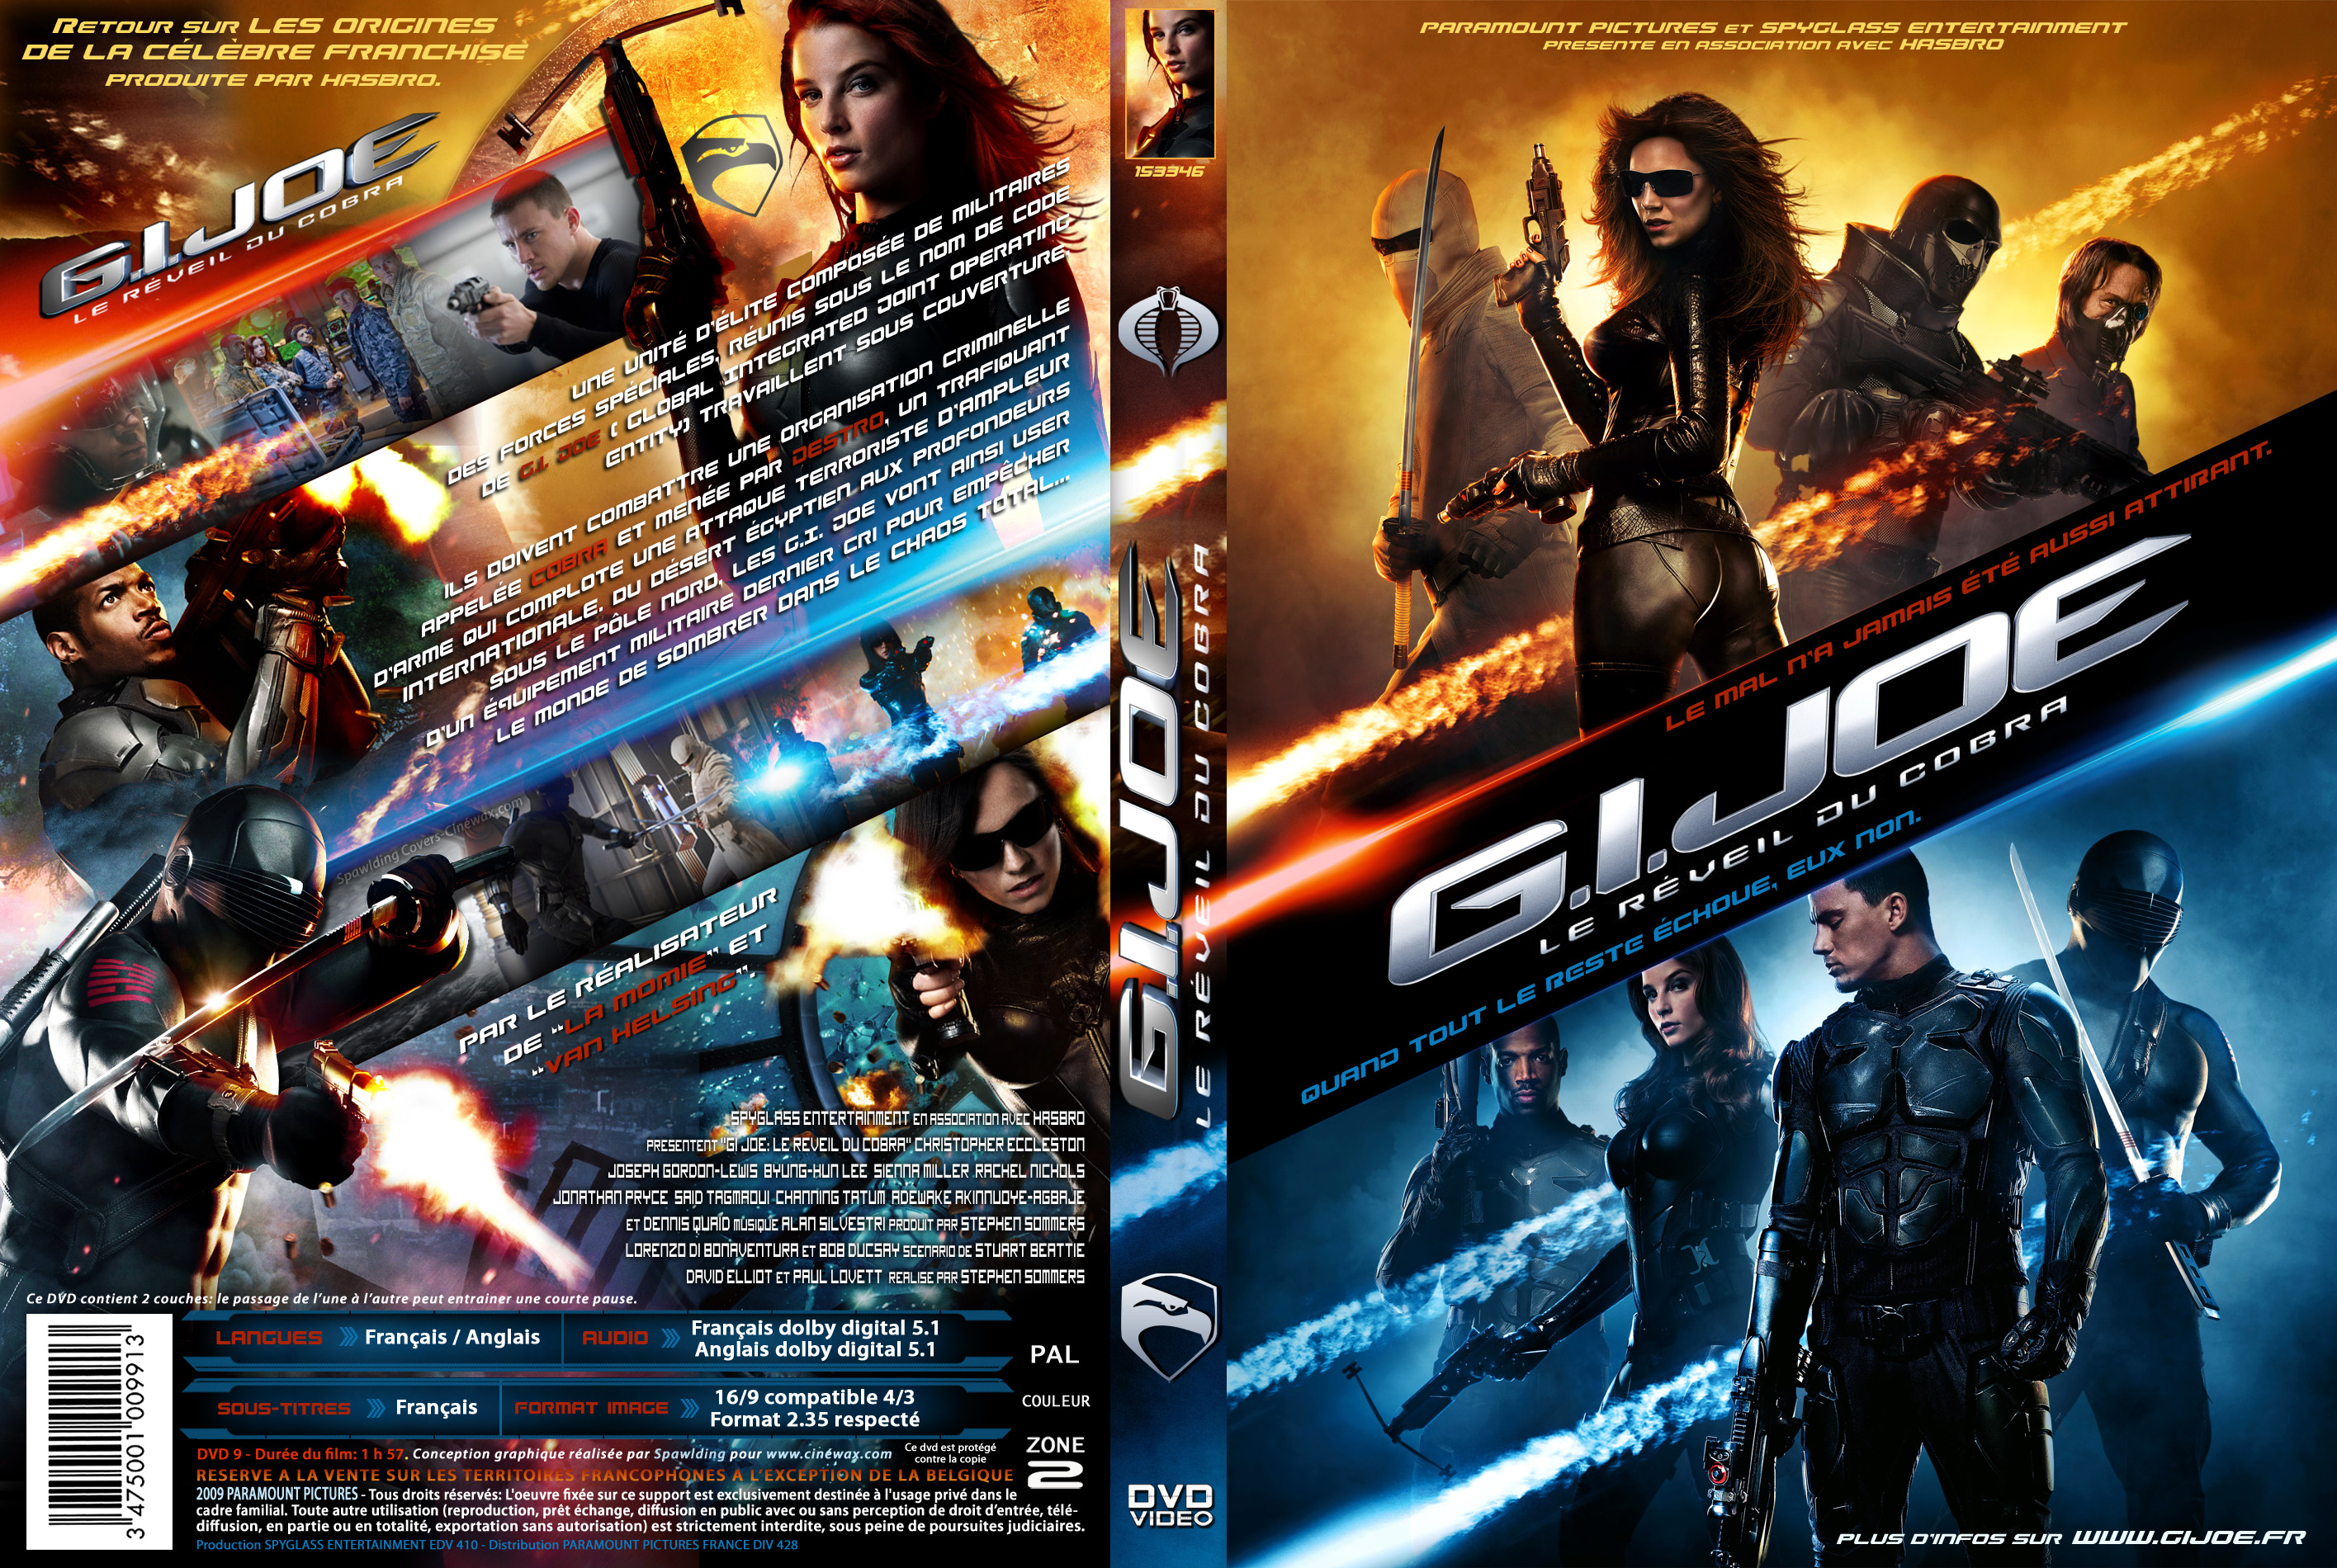 Watch G I Joe The Rise Of Cobra movie online for free